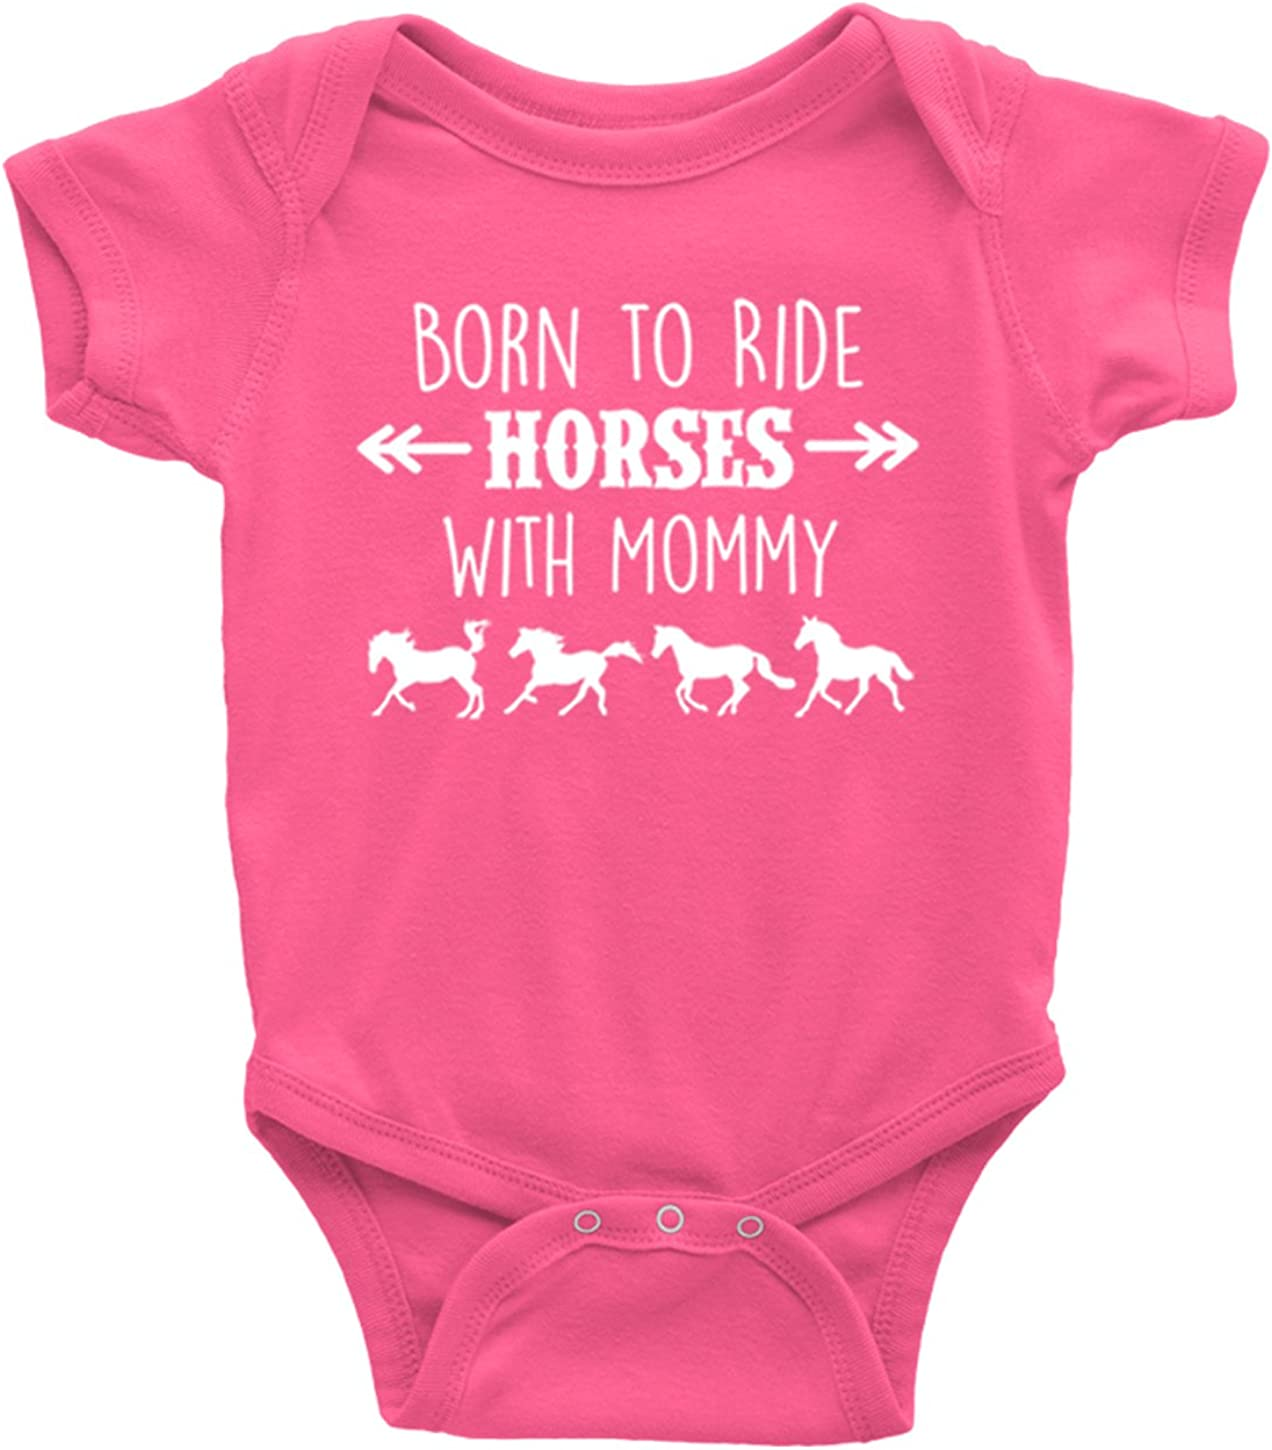 Baby Boy or Girl Born to Ride Horses with Mommy Short Sleeve Horse Bodysuit